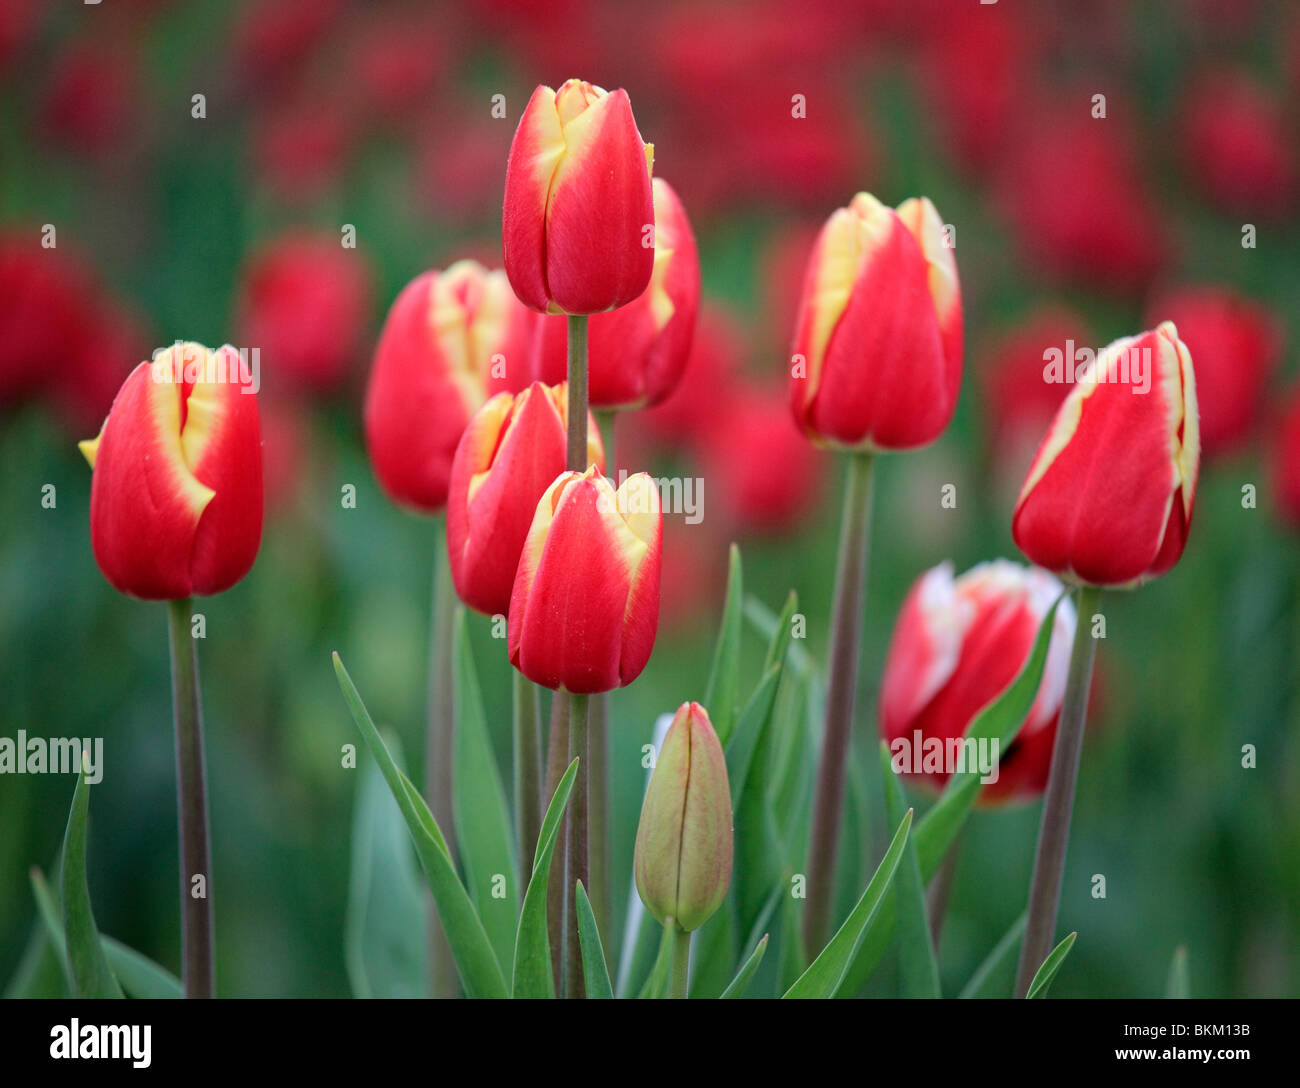 Tulips in Skagit Valley during the annual Tulip Festival - Stock Image